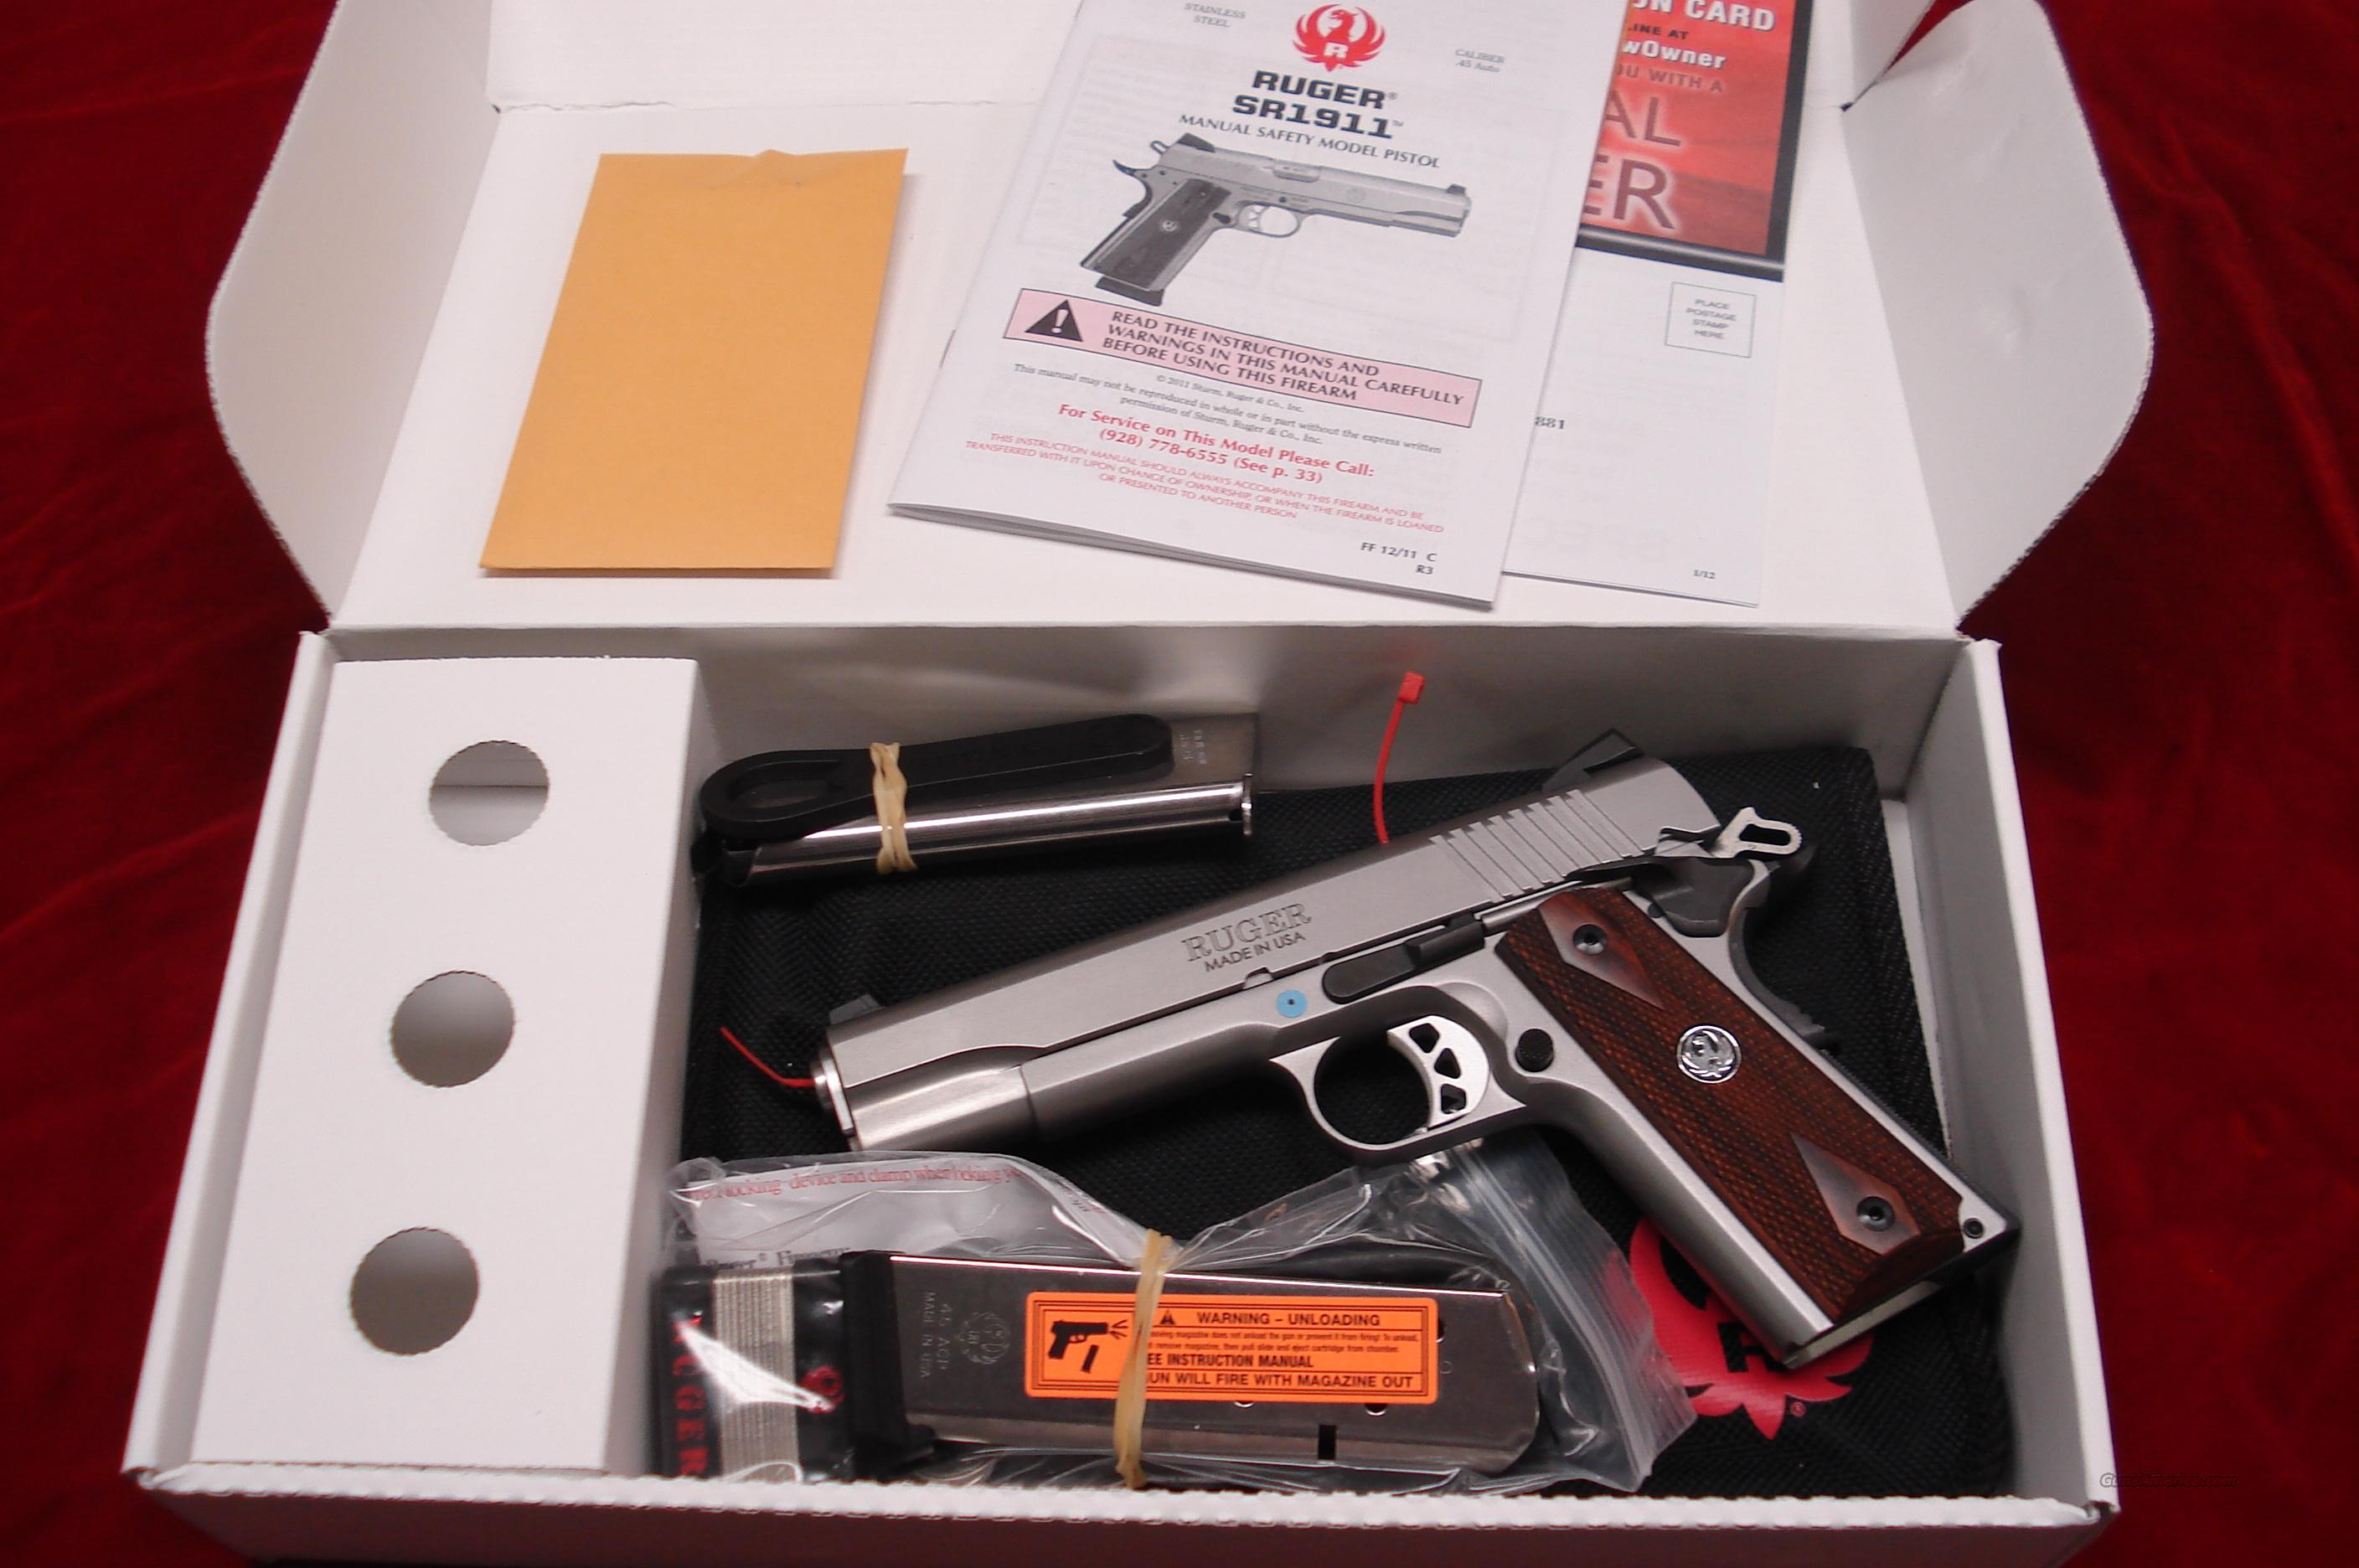 RUGER SR1911 STAINLESS 45ACP NEW  Guns > Pistols > Ruger Semi-Auto Pistols > SR9 & SR40